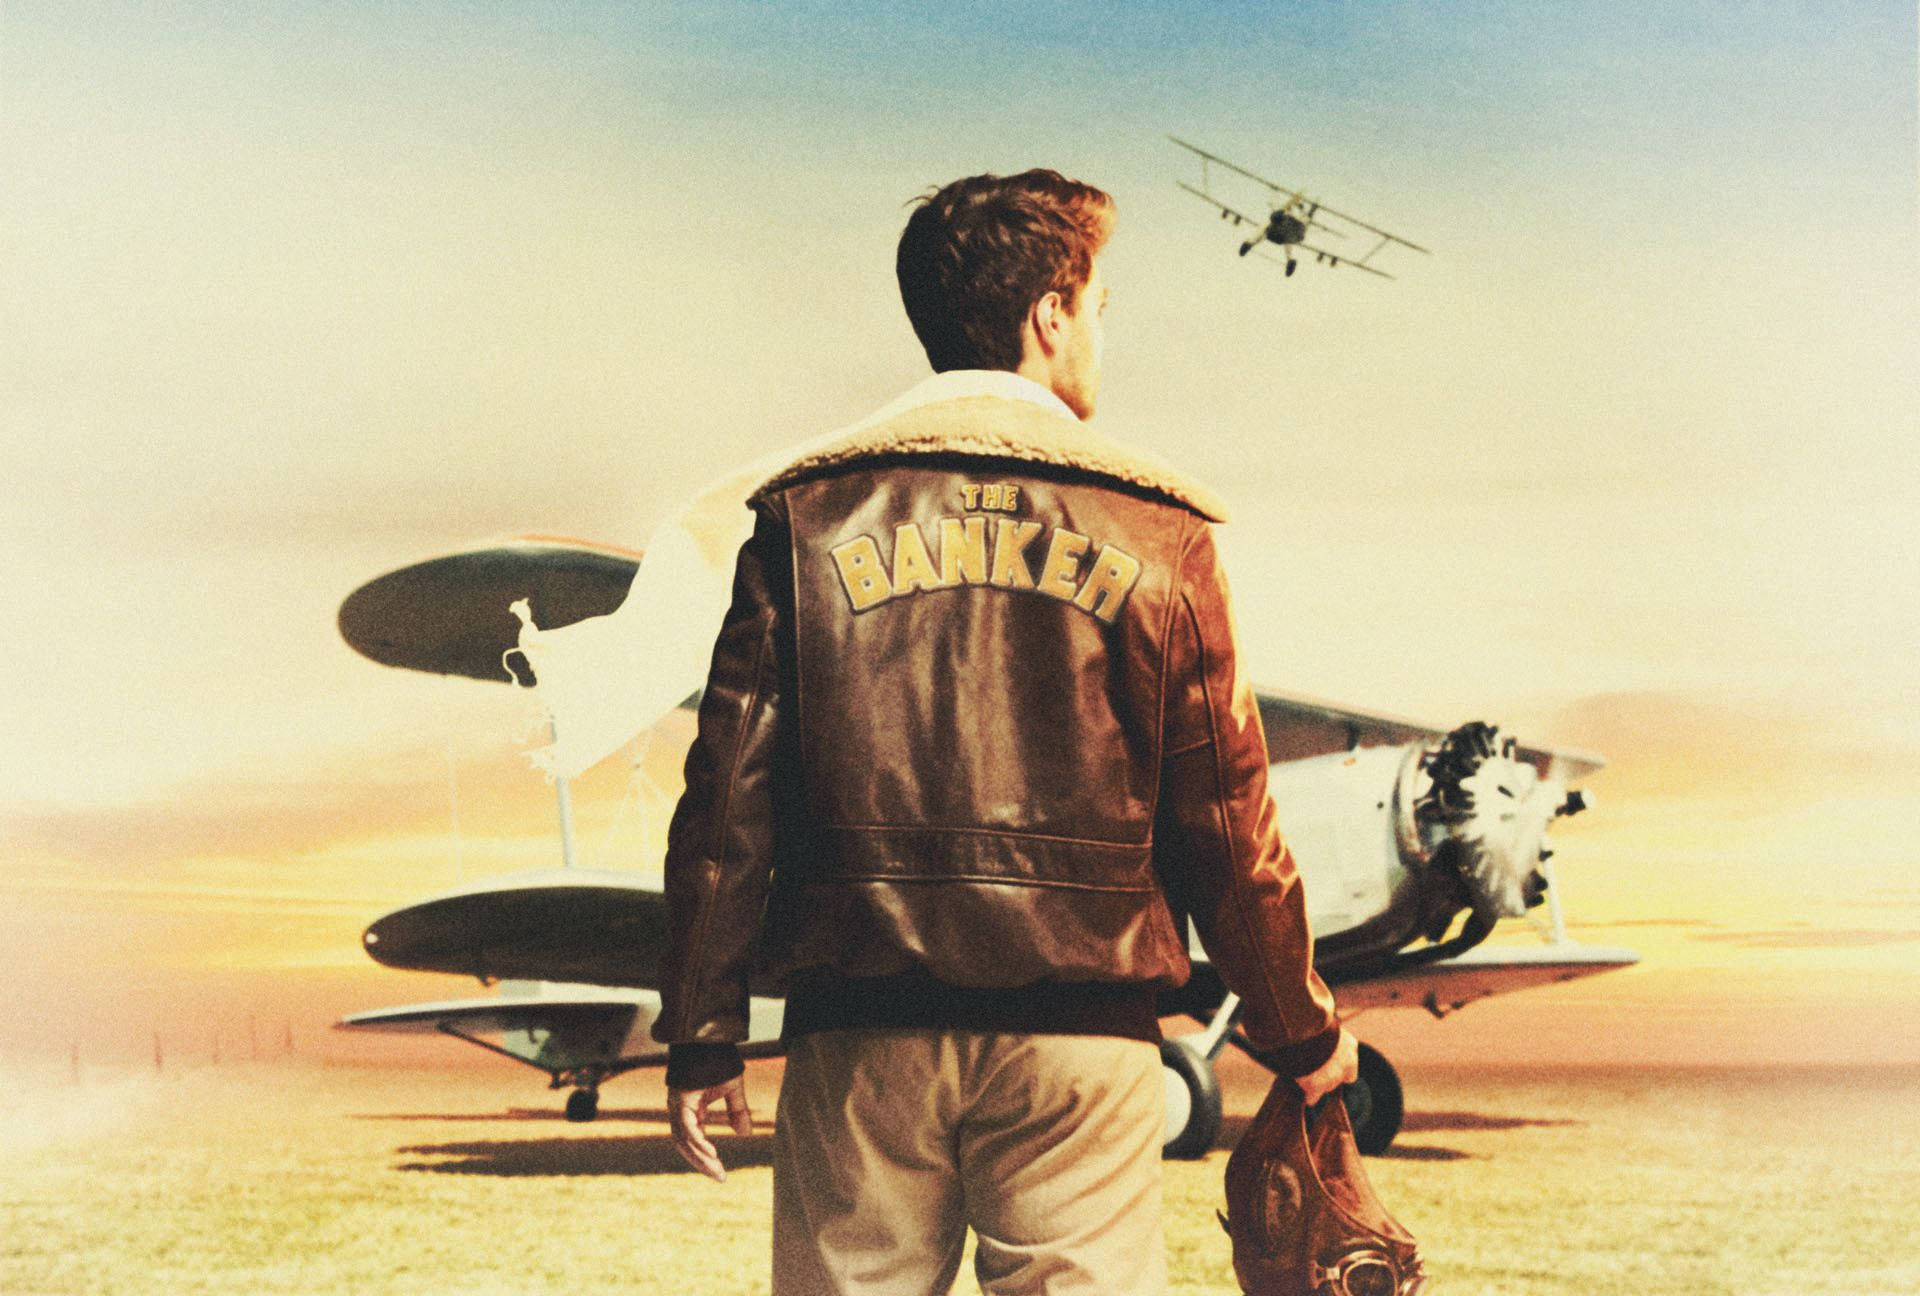 """man from back walking towards airplane in desert wearing brown leather jacket with """"The Banker"""" written on the back photographed by Simon Duhamel for bank BNP Paribas"""